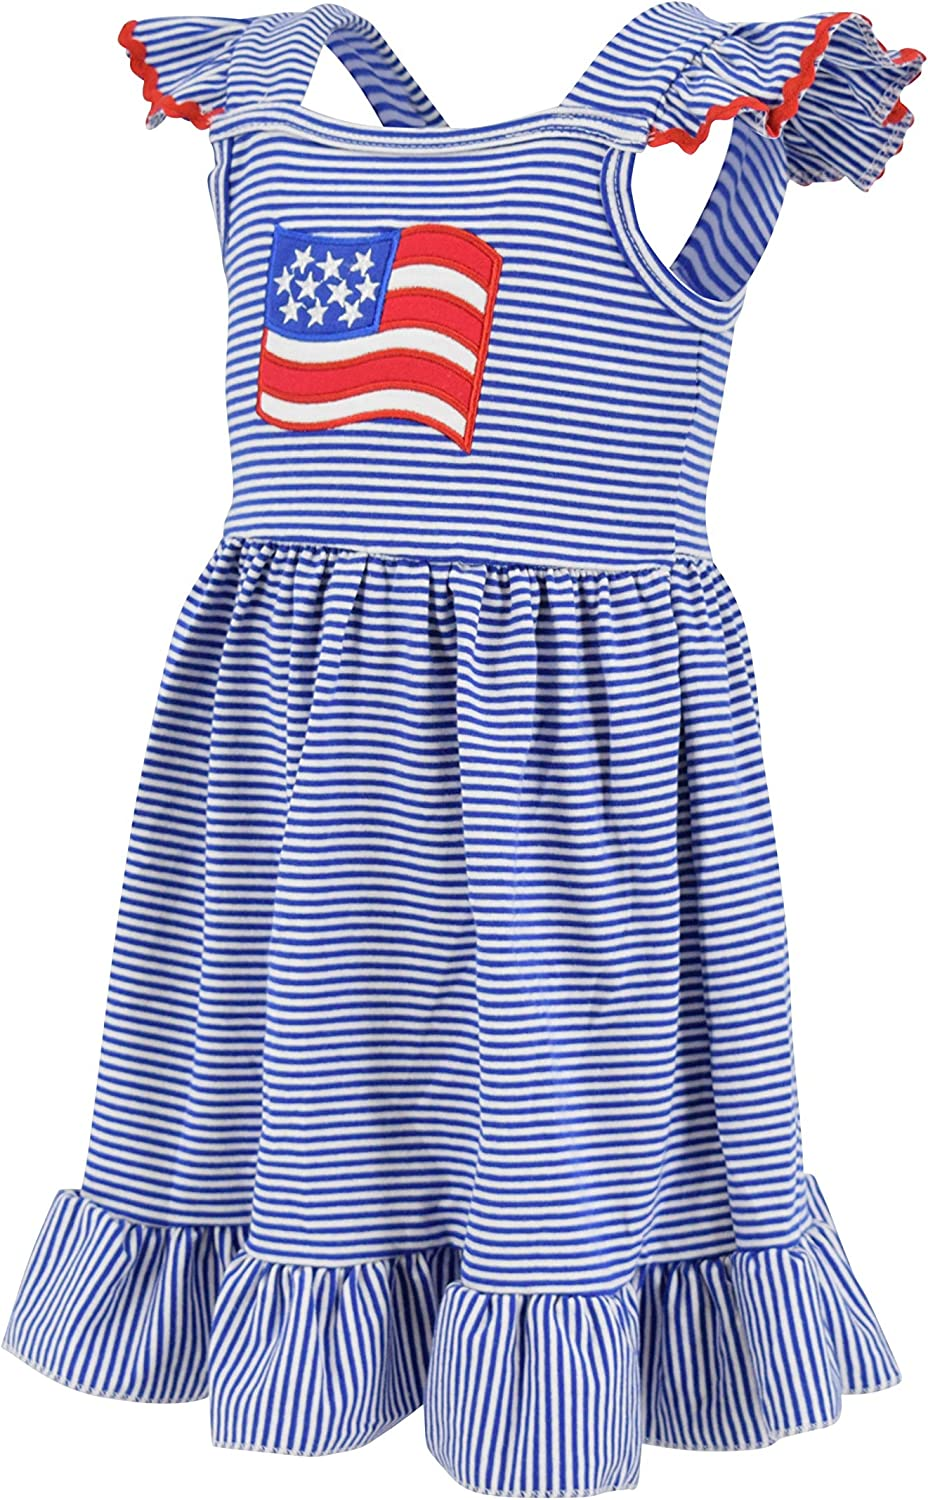 Unique Baby Girls 4th of July American Flag Dress